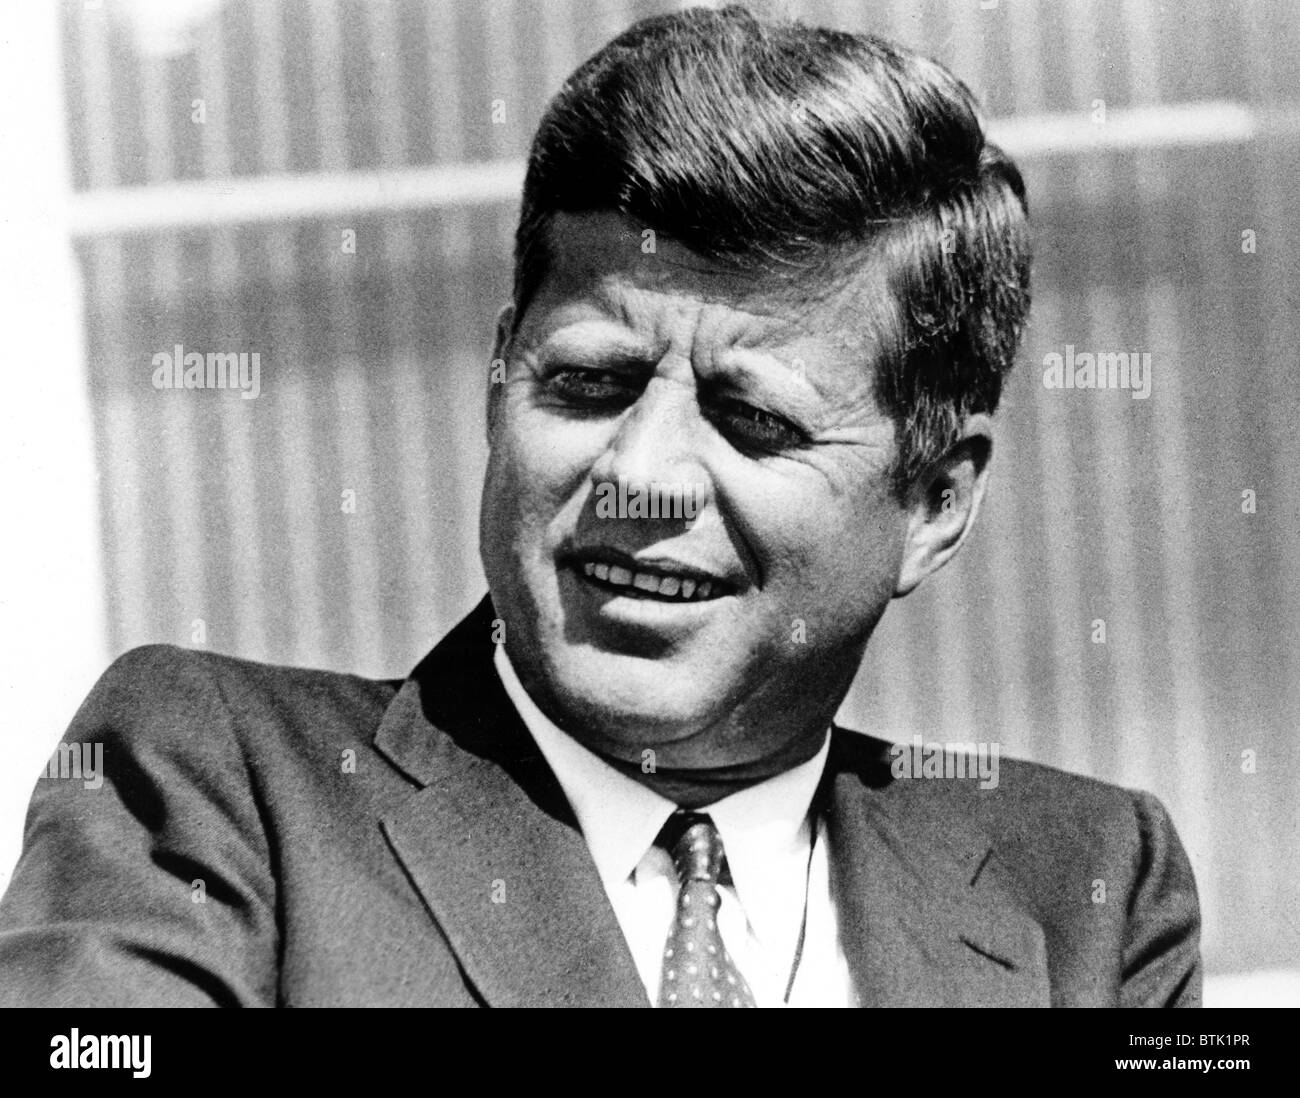 JFK: ONE THOUSAND DAYS -- AND TEN YEARS, CBS News Special Report, John F. Kennedy, aired 10/19/1973. - Stock Image